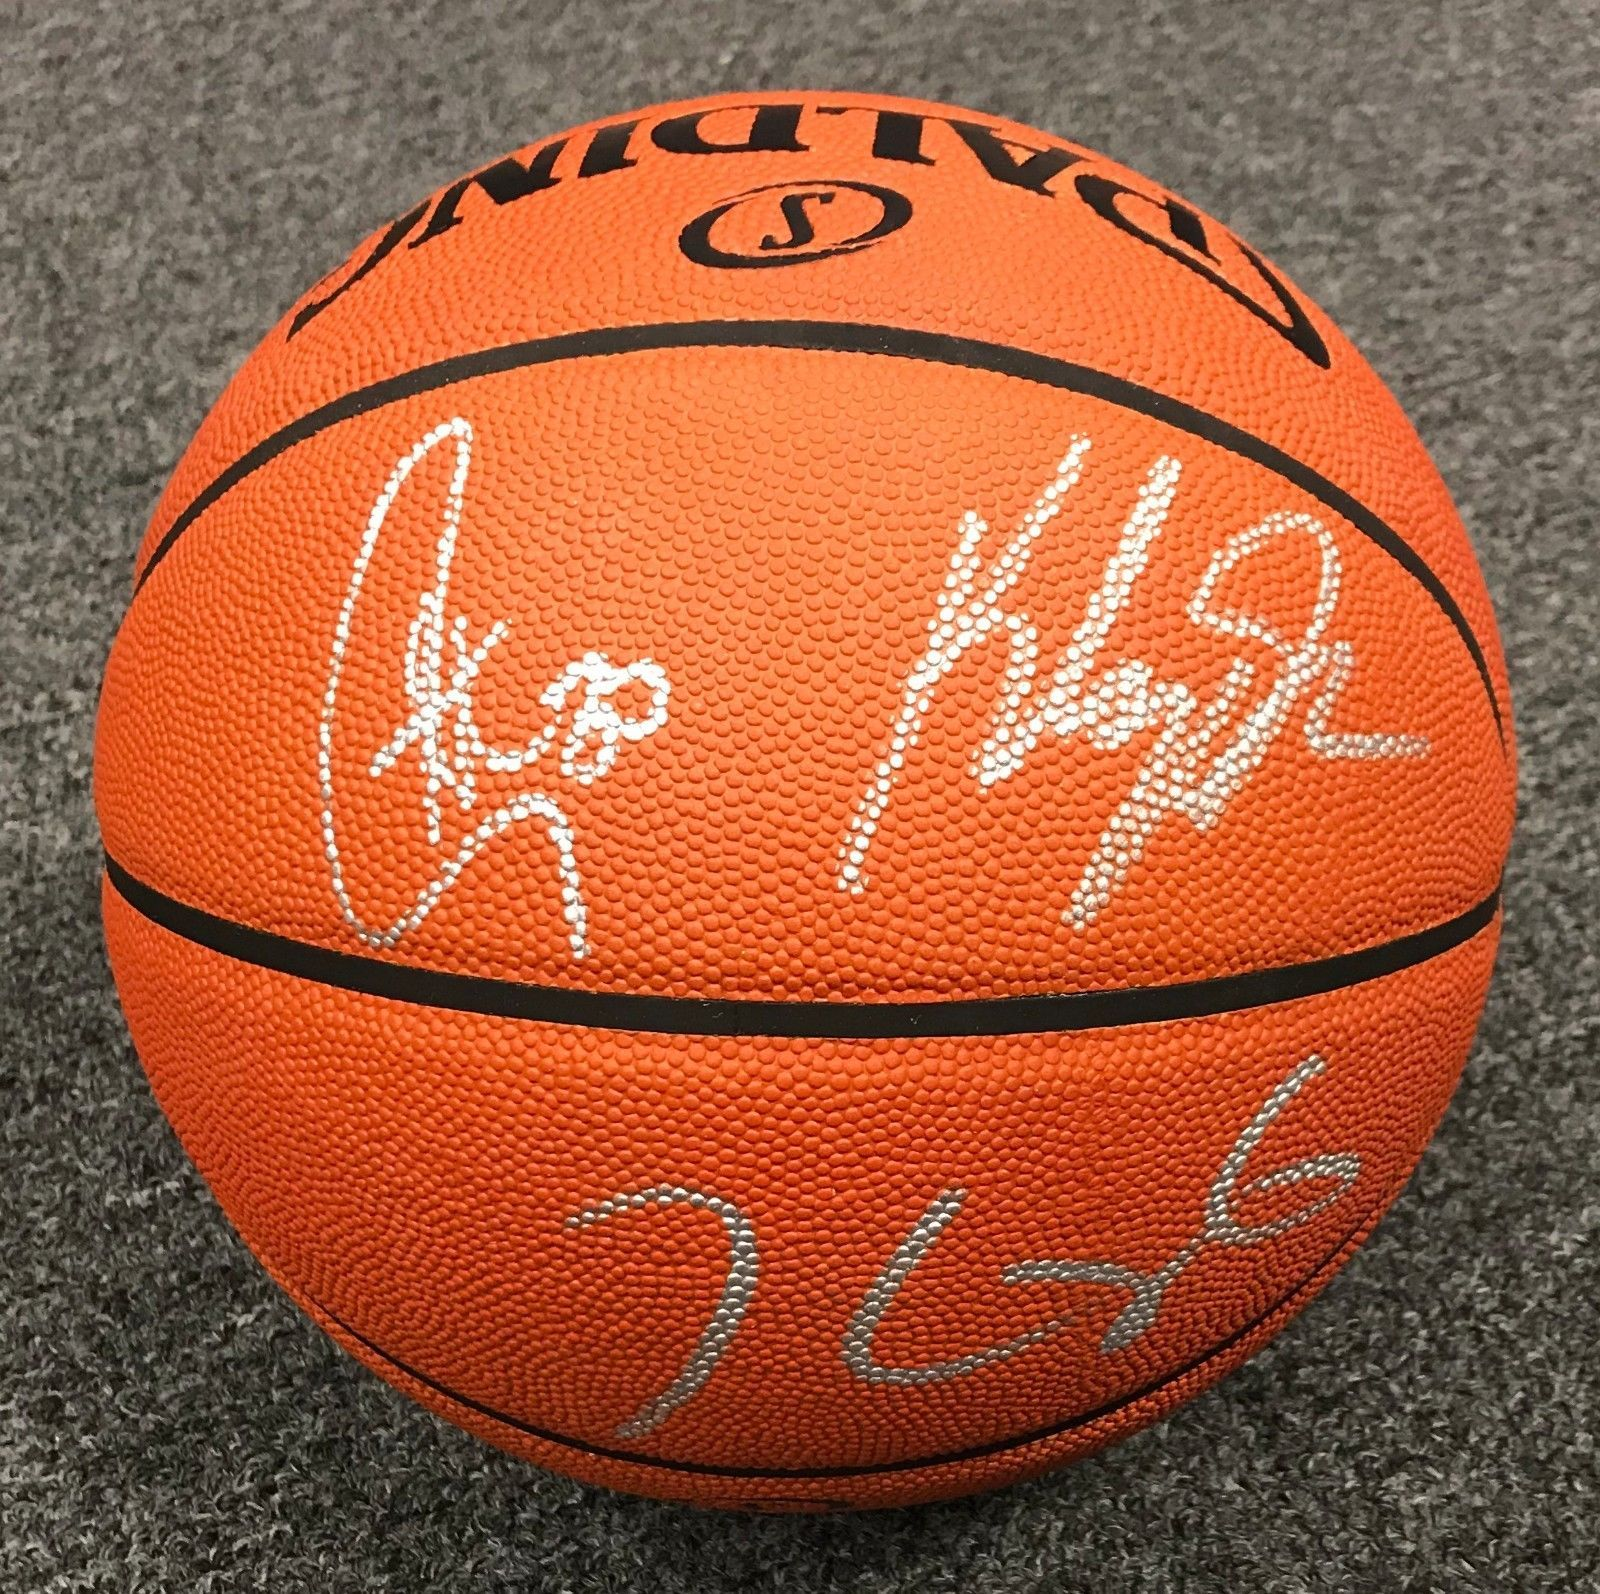 88bf0a539ef2 Stephen Curry + Kevin Durant   Klay Thompson Signed Basketball PSA DNA +  BAS LOA  Basketball